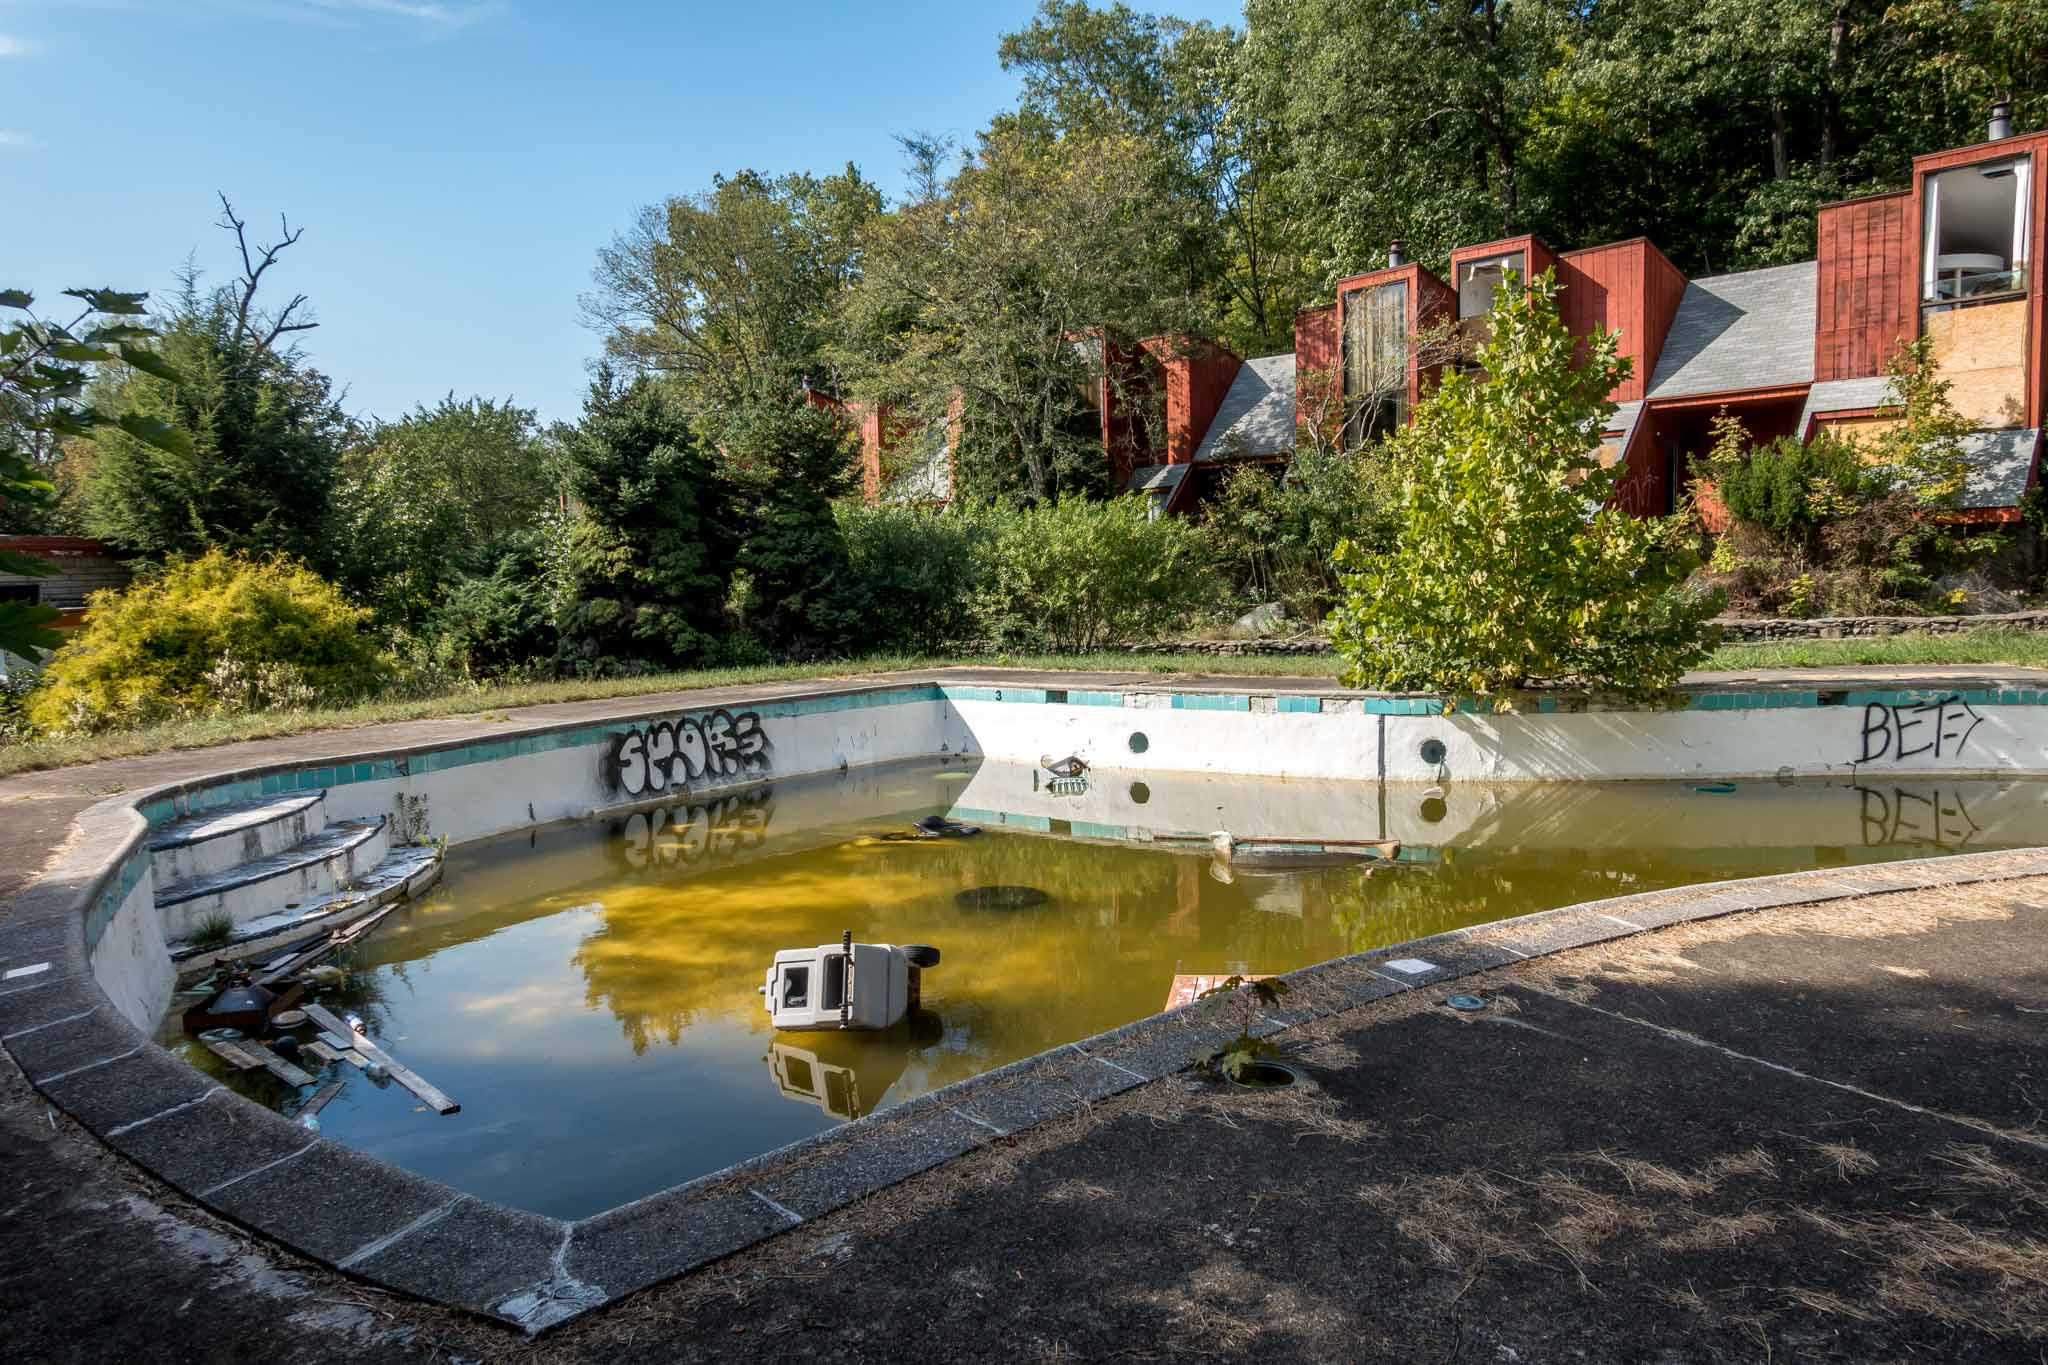 The outdoor pool at the abandoned Penn Hills Resort